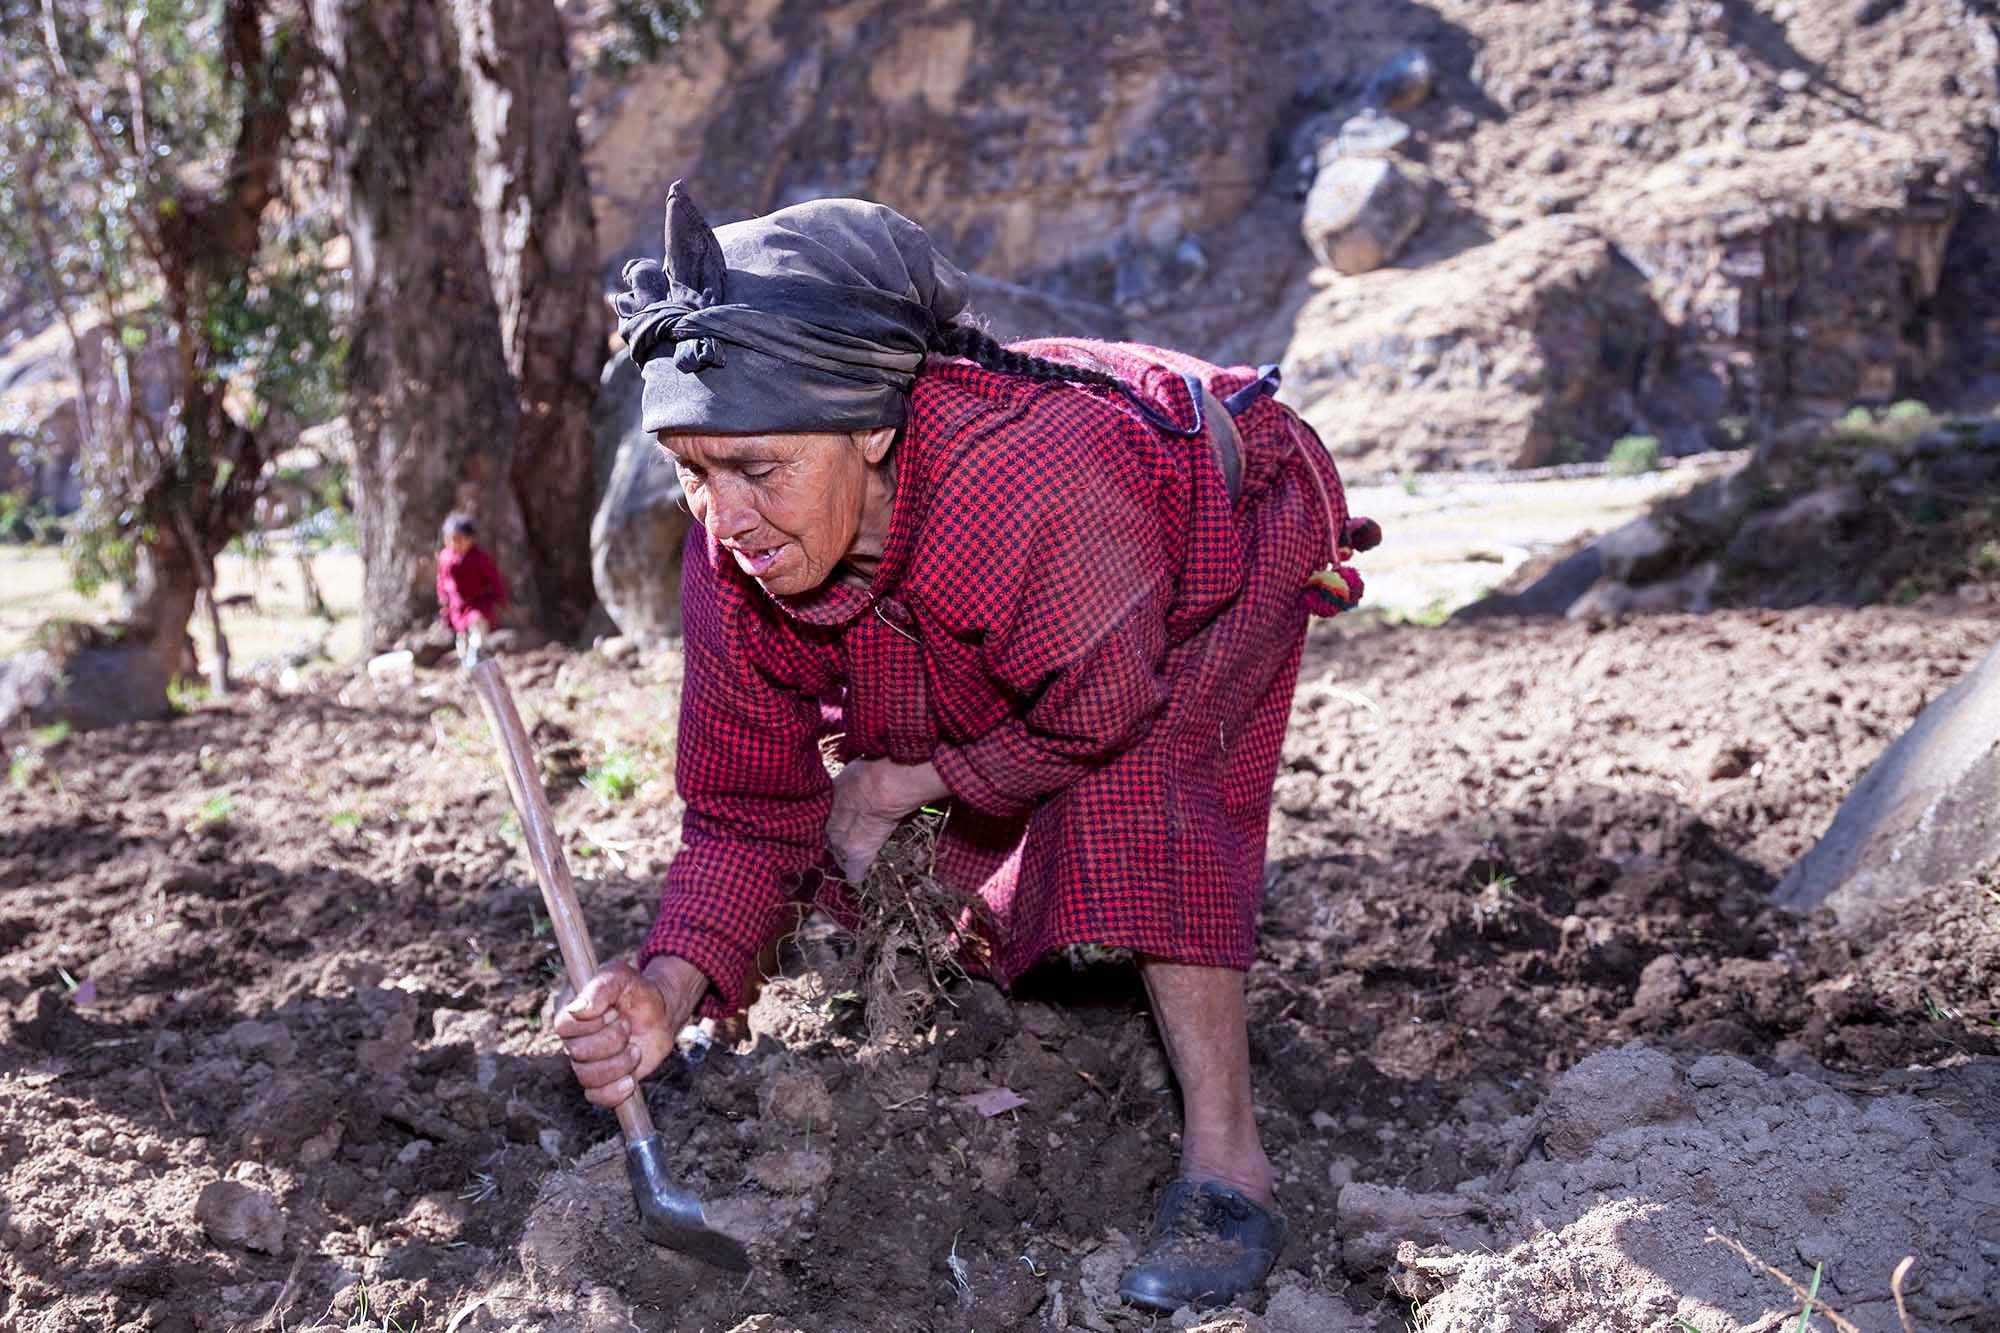 Eleuteria tilling the soil while wearing a mourning scarf.